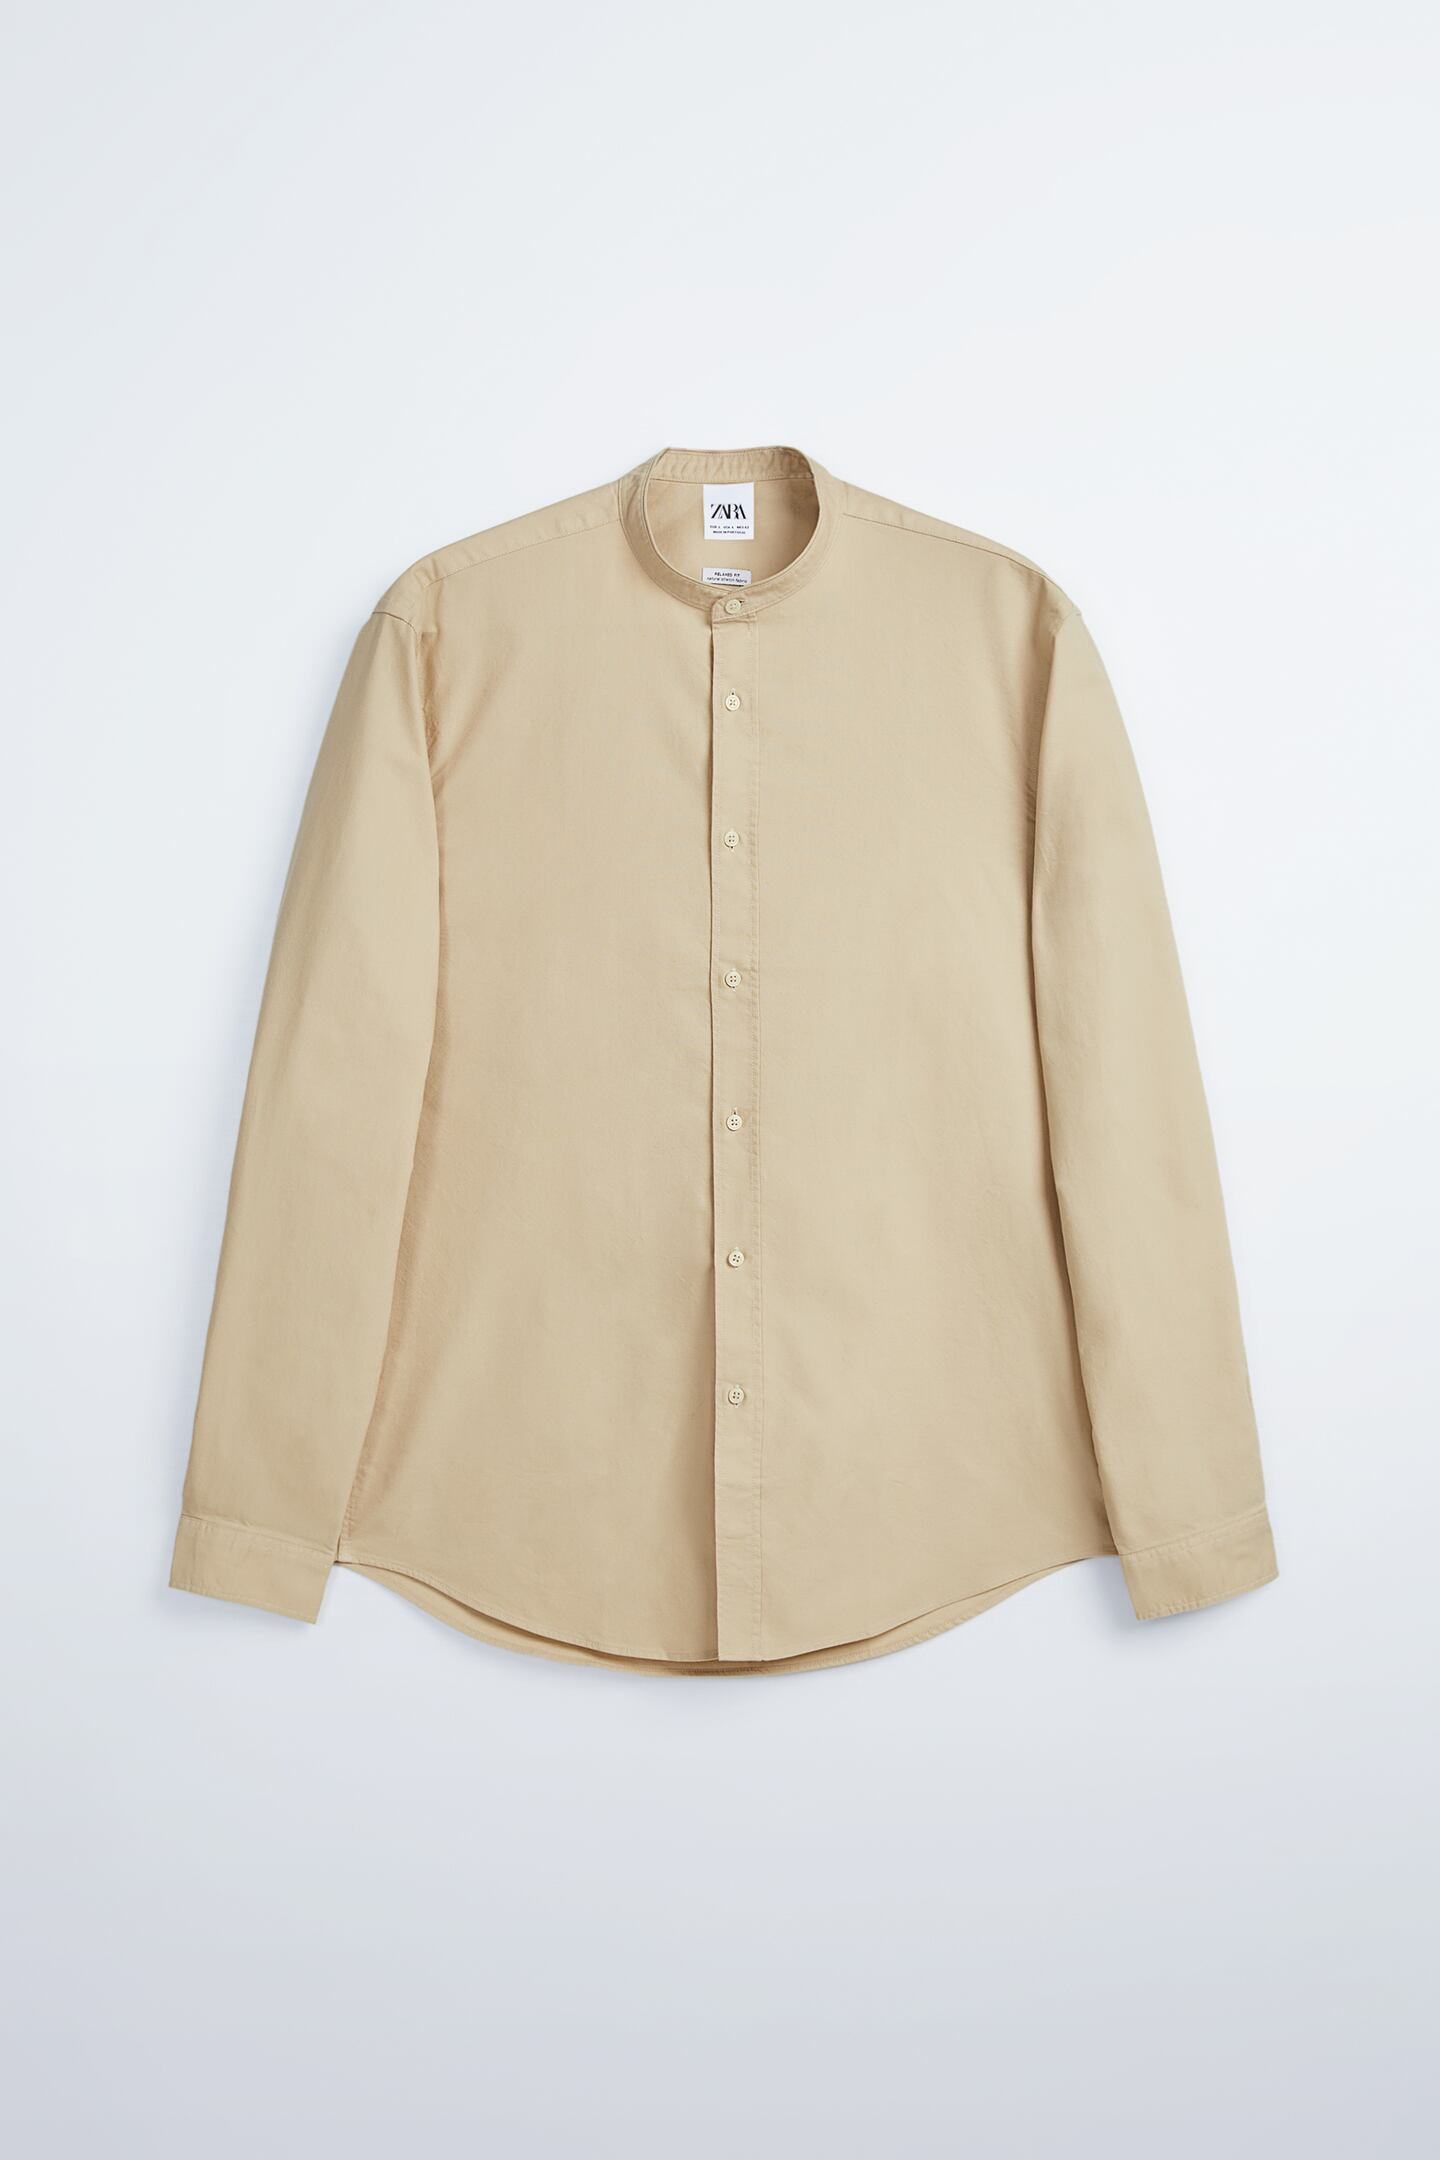 Zara Mandarin Collar Oxford Shirt